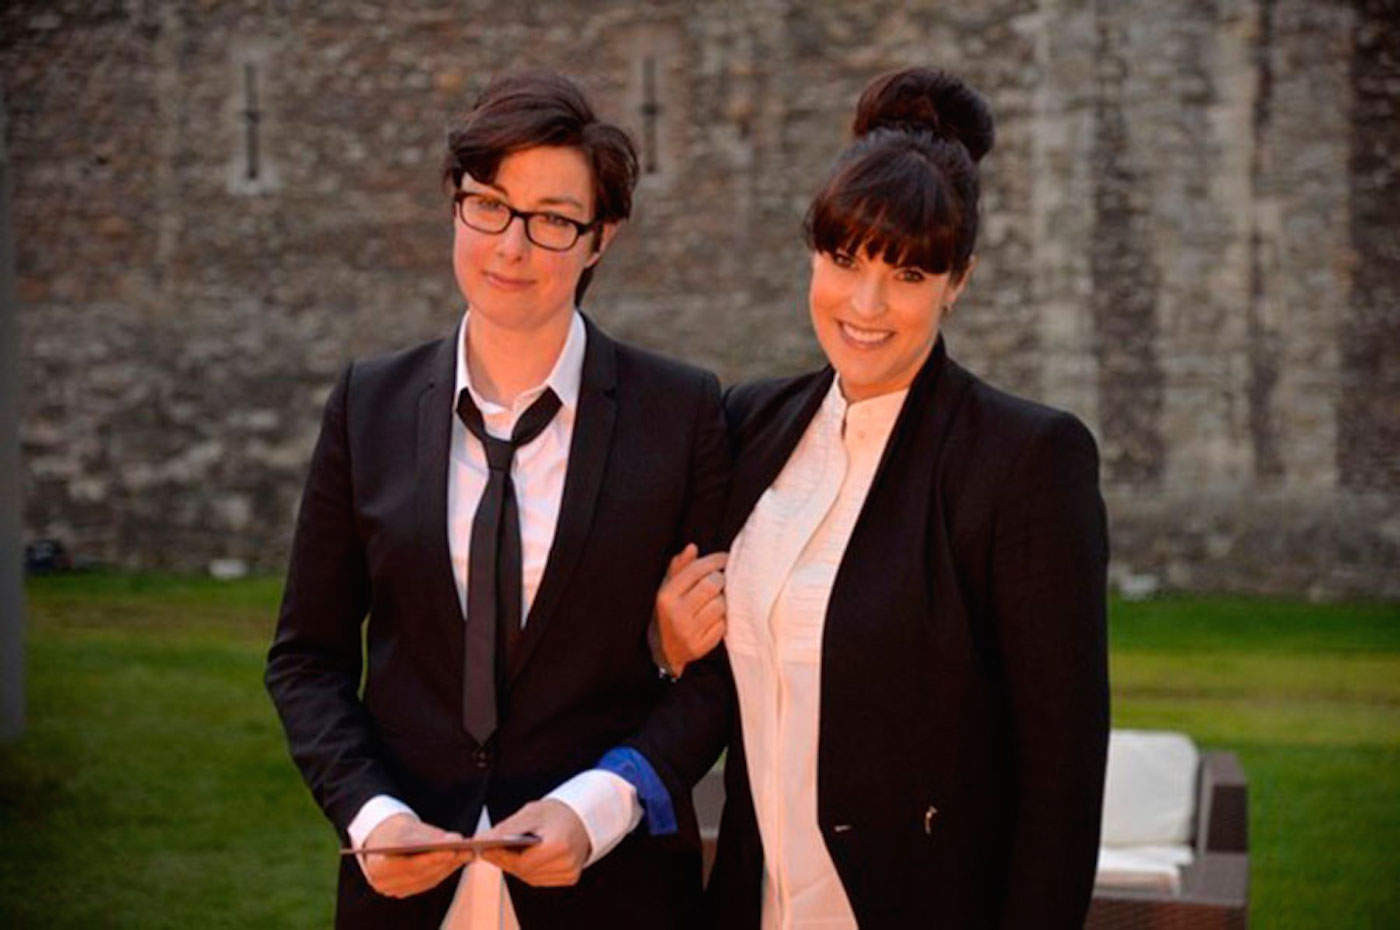 Leaked Sue Perkins nude photos 2019